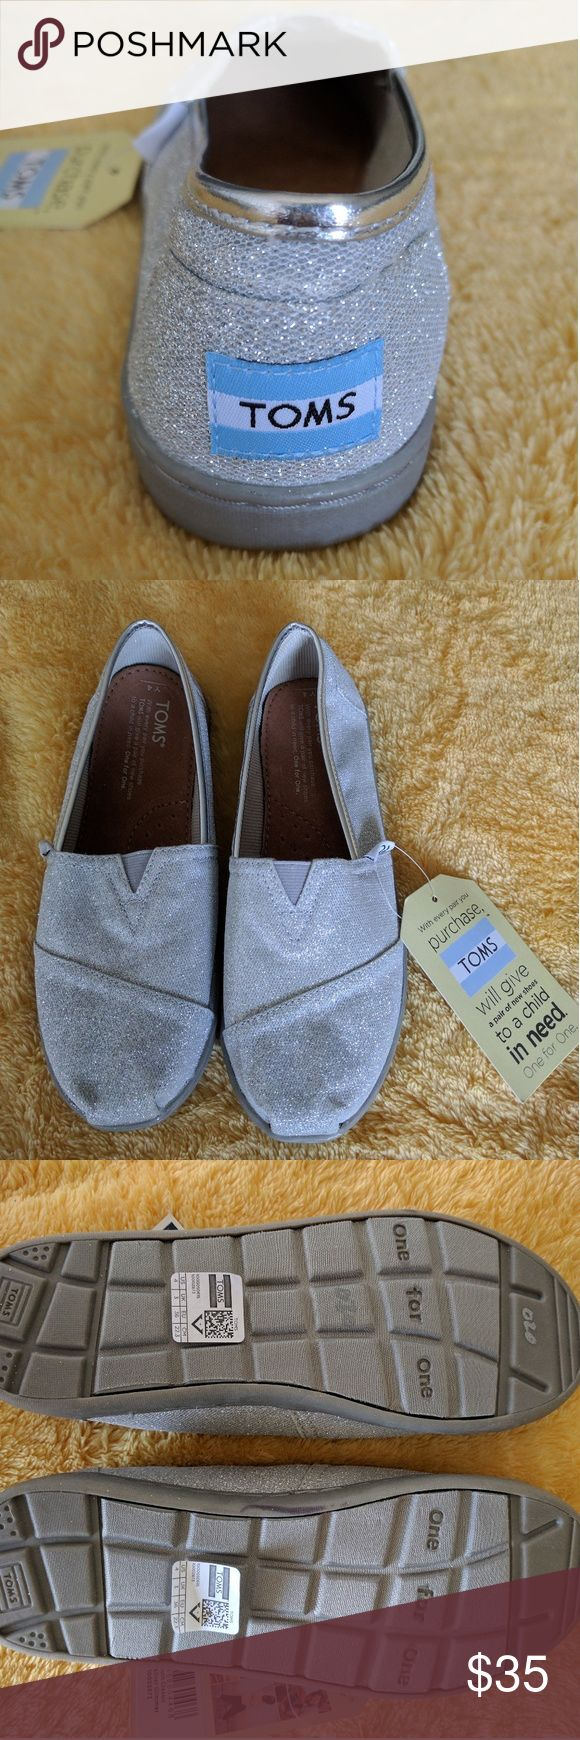 Silver Tom's Silver kids Tom's TOMS Shoes